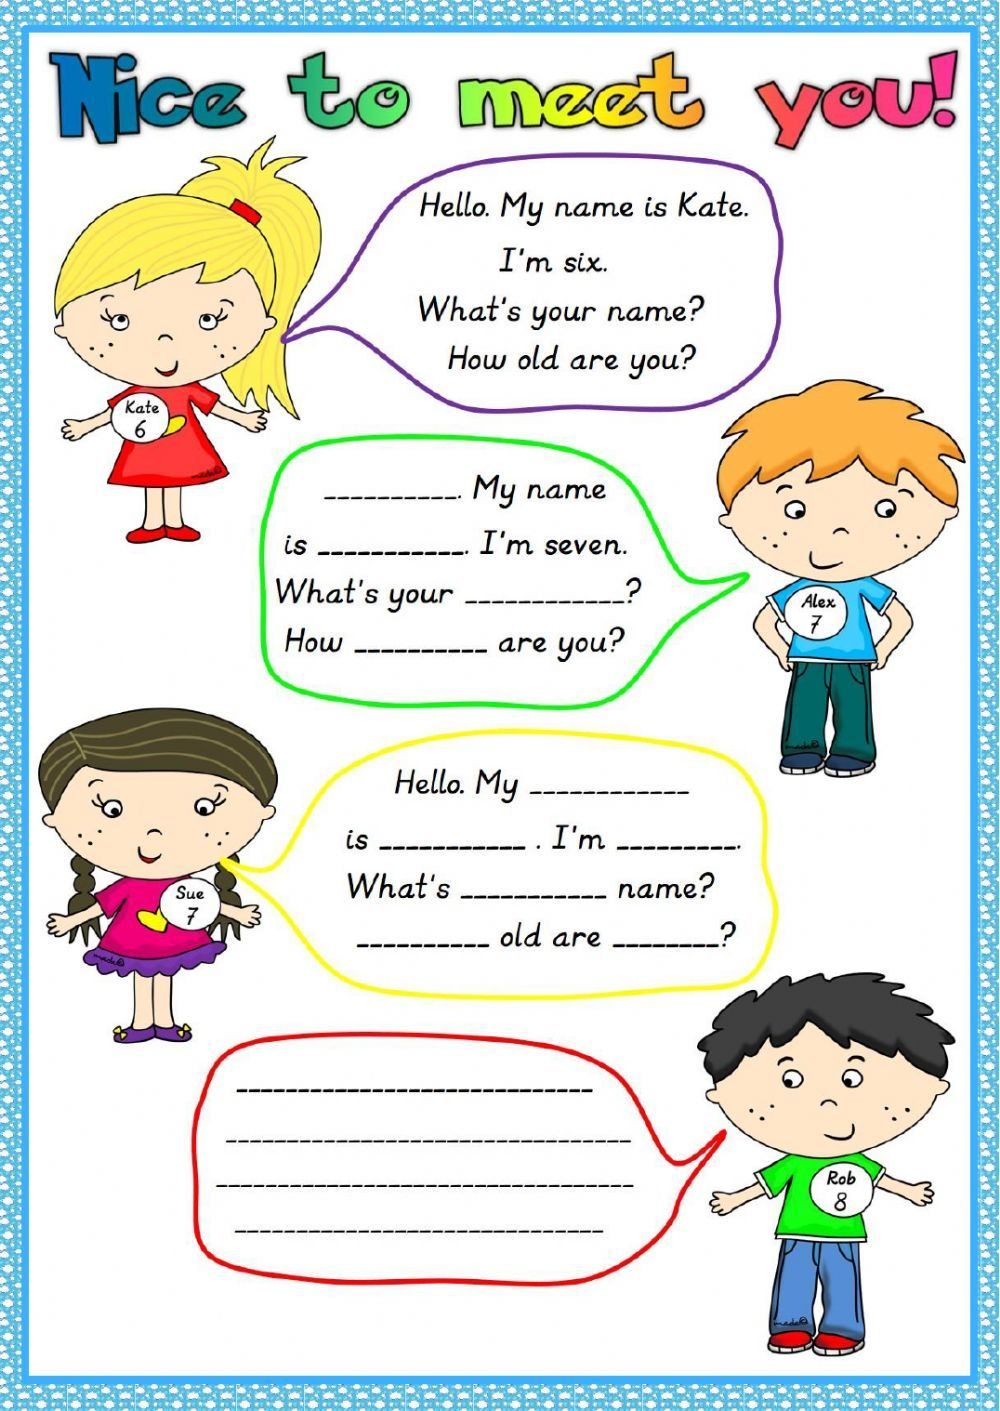 Walking through the jungle worksheet free esl printable worksheets - Introducing Yourself Interactive And Downloadable Worksheet Check Your Answers Online Or Send Them To Your